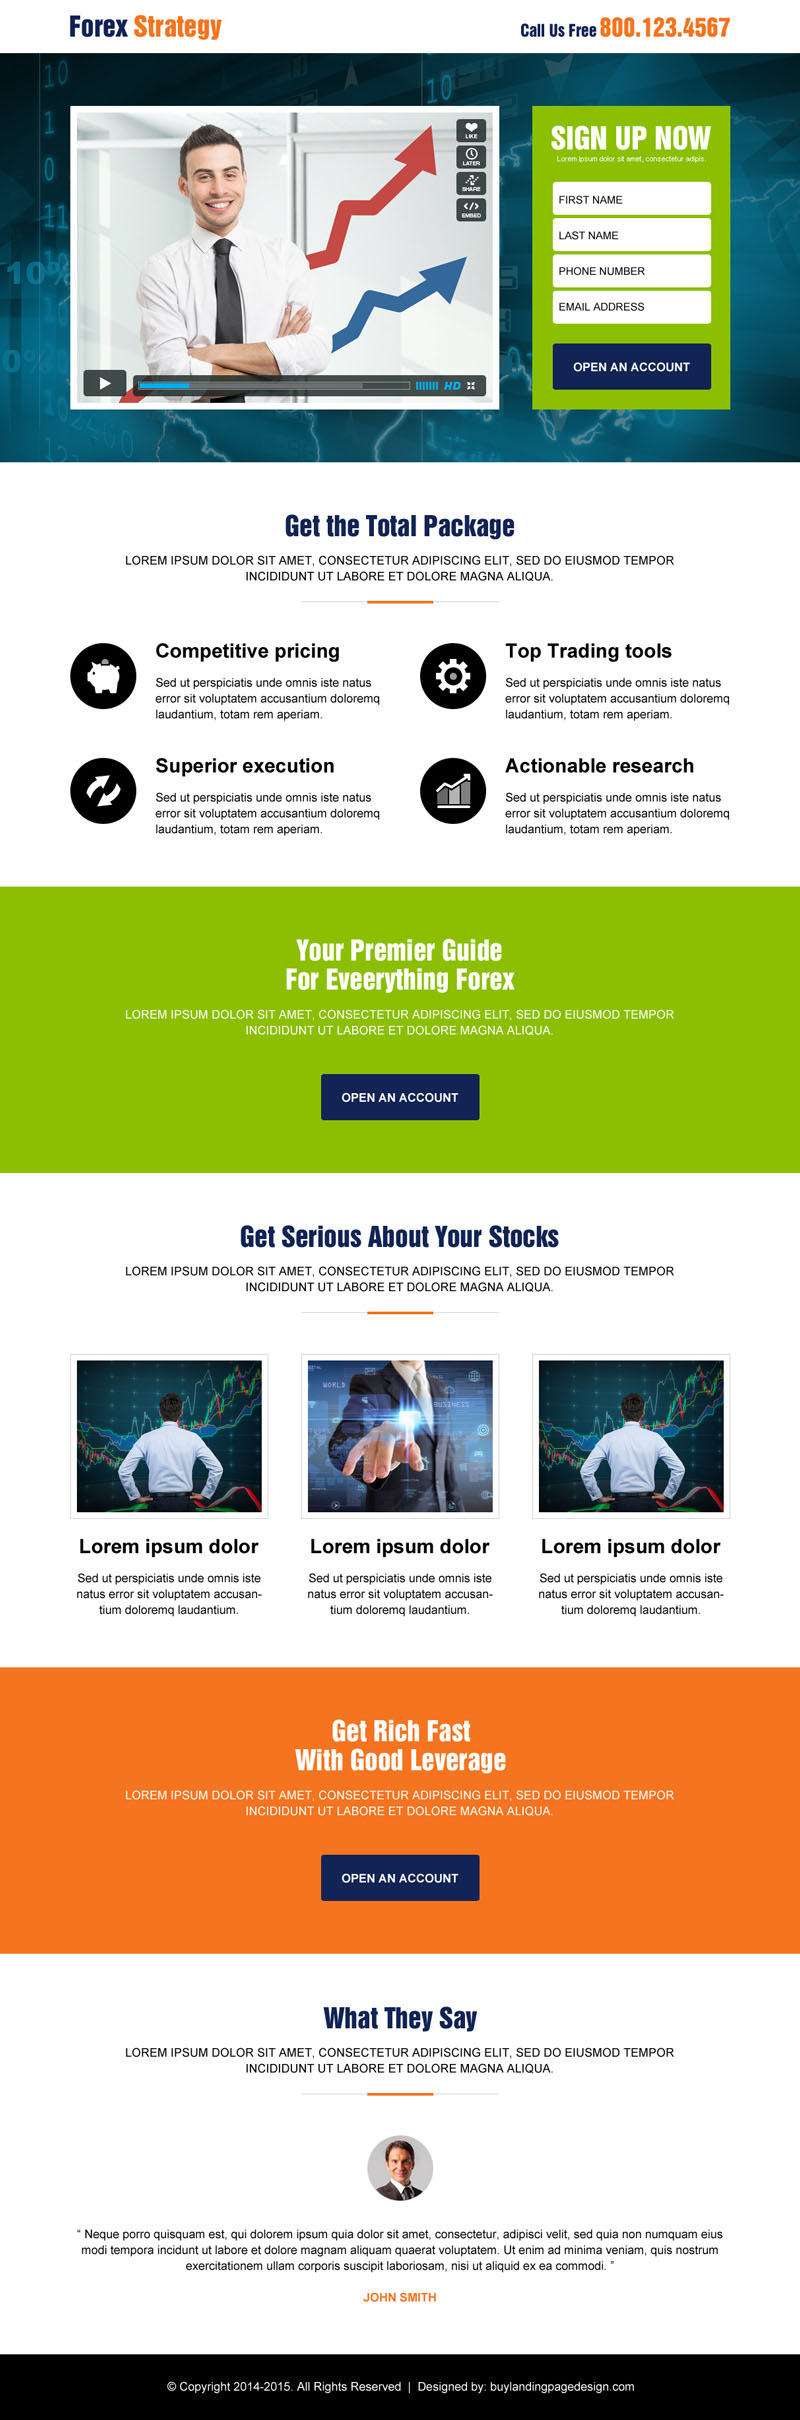 forex-video-sign-up-lead-capture-converting-landing-page-design-template-005